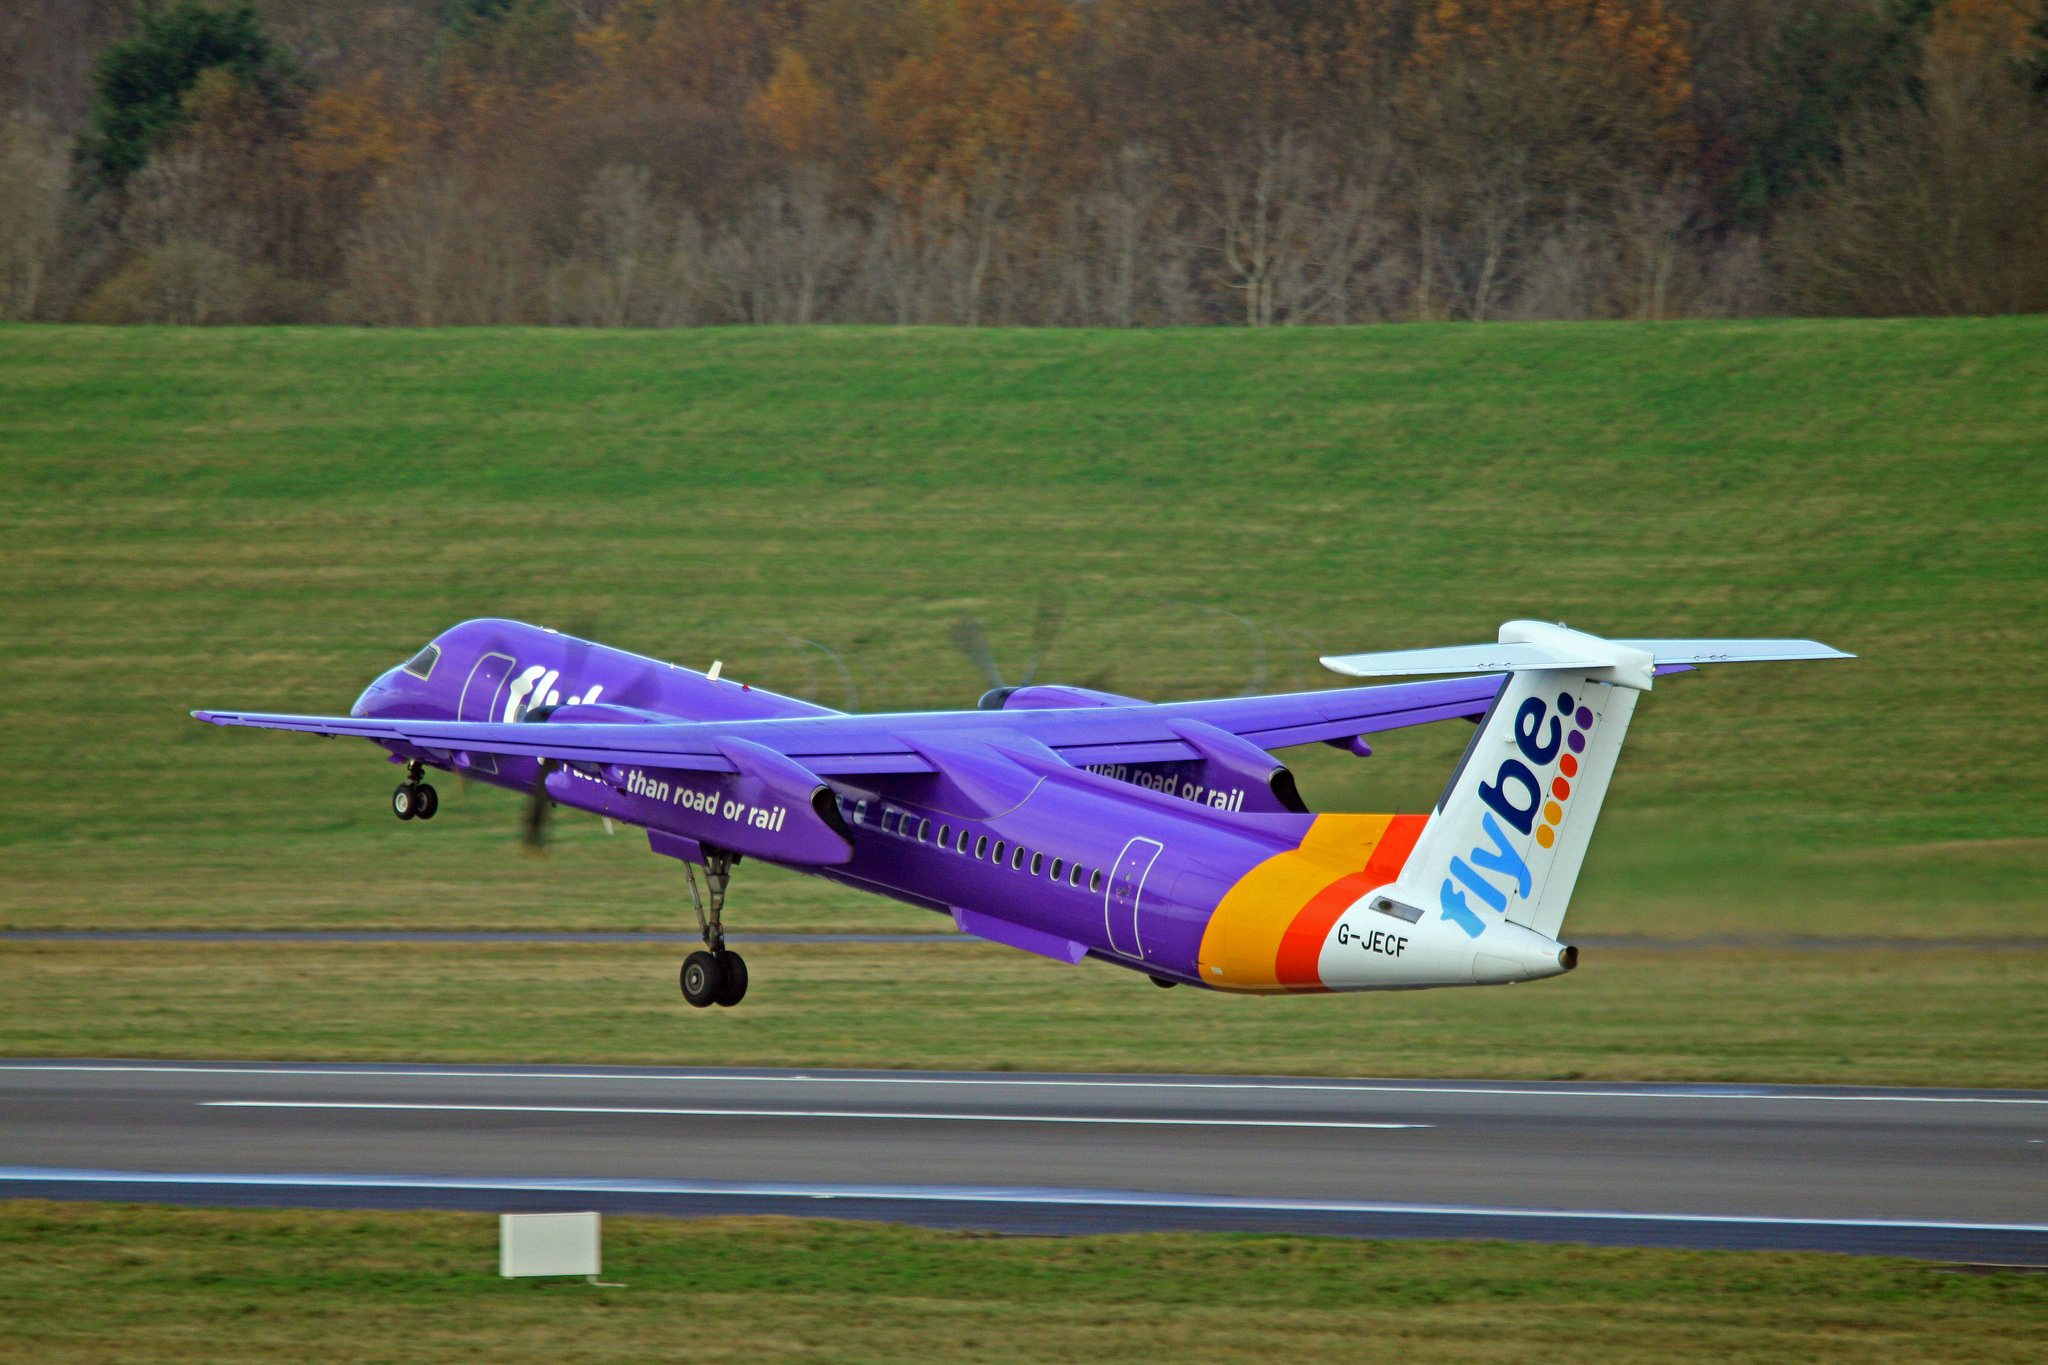 Flybe.com Airlines G-JECF DHC-8 par Paul Lucas sous (CC BY 2.0) https://www.flickr.com/photos/8269539@N04/15914793532/